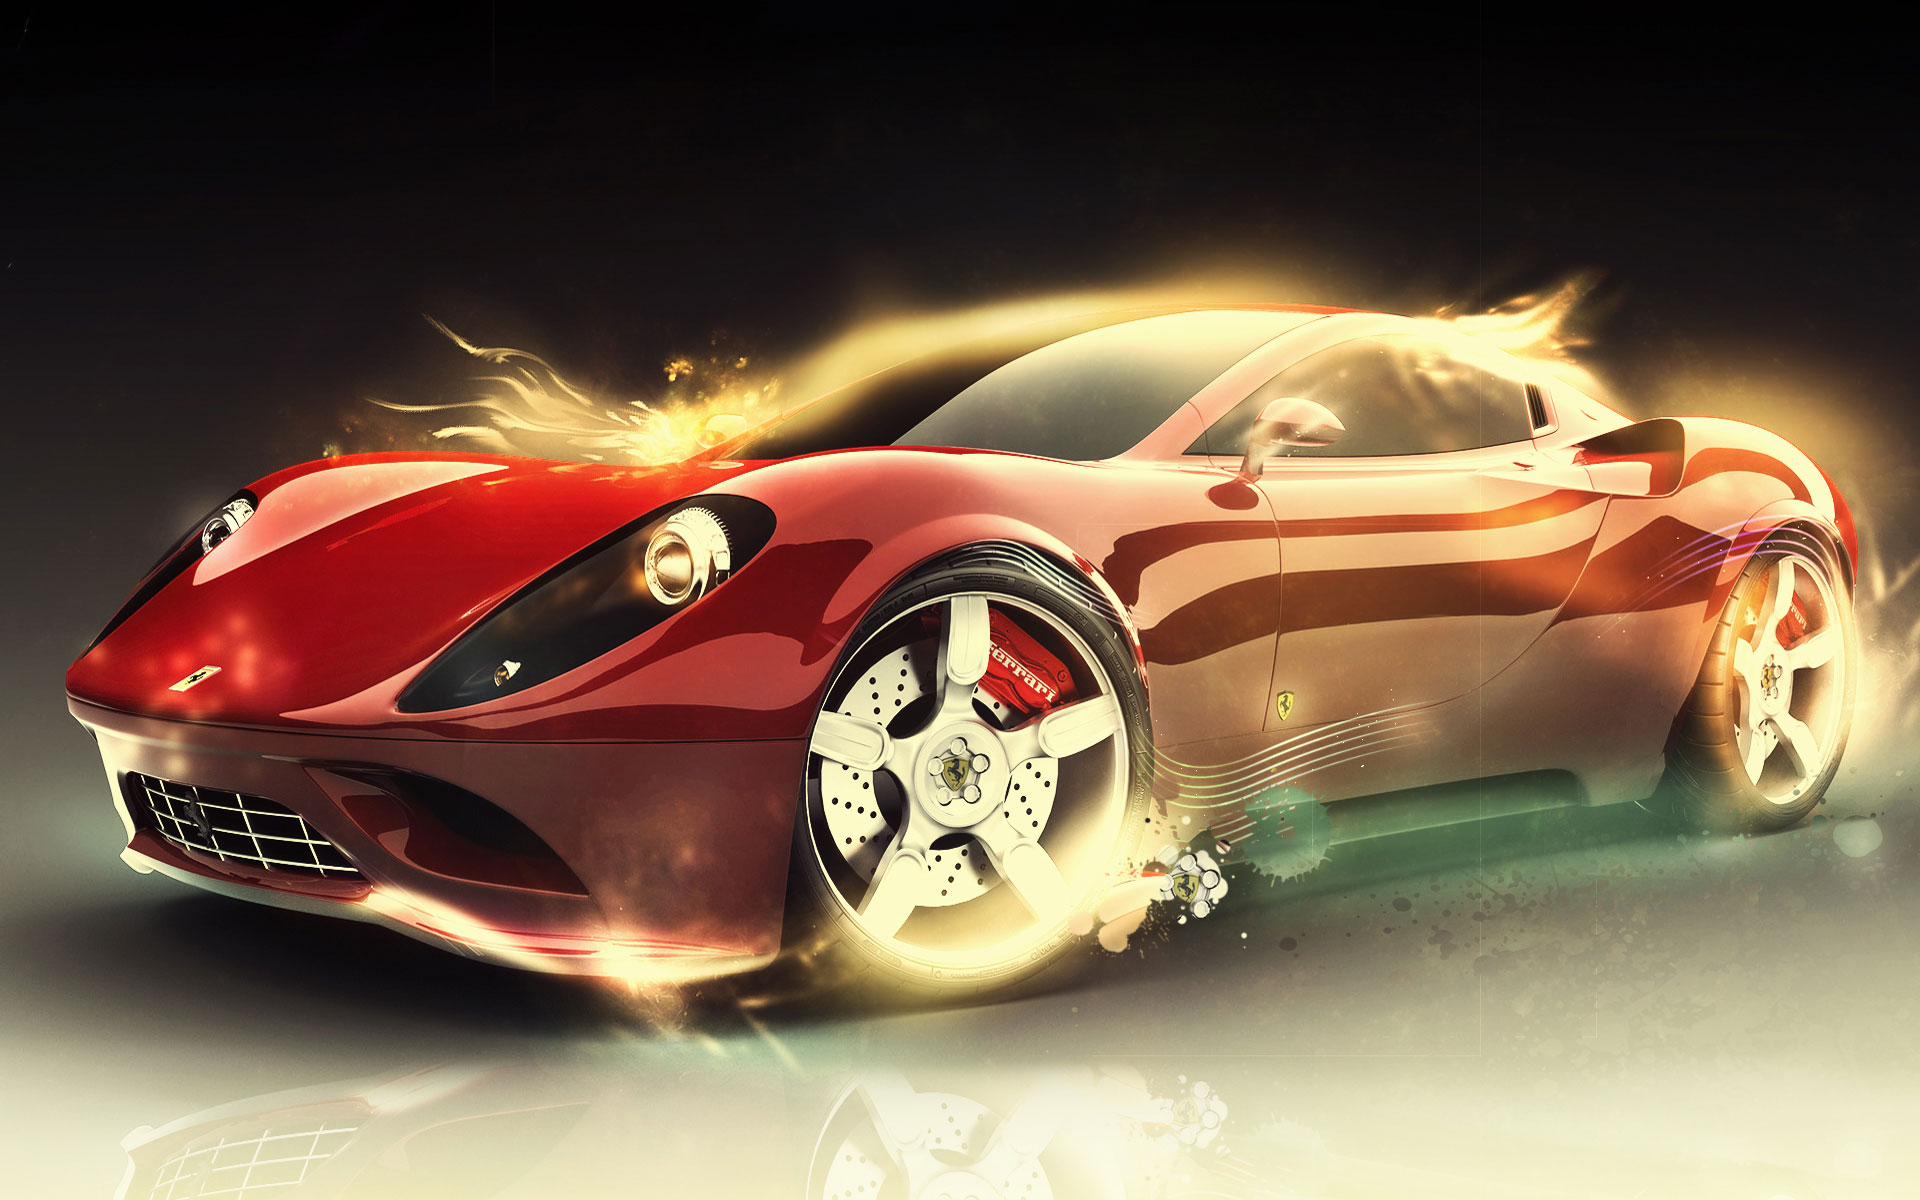 Ferrari, car, wallpaper, fire, скачать фото